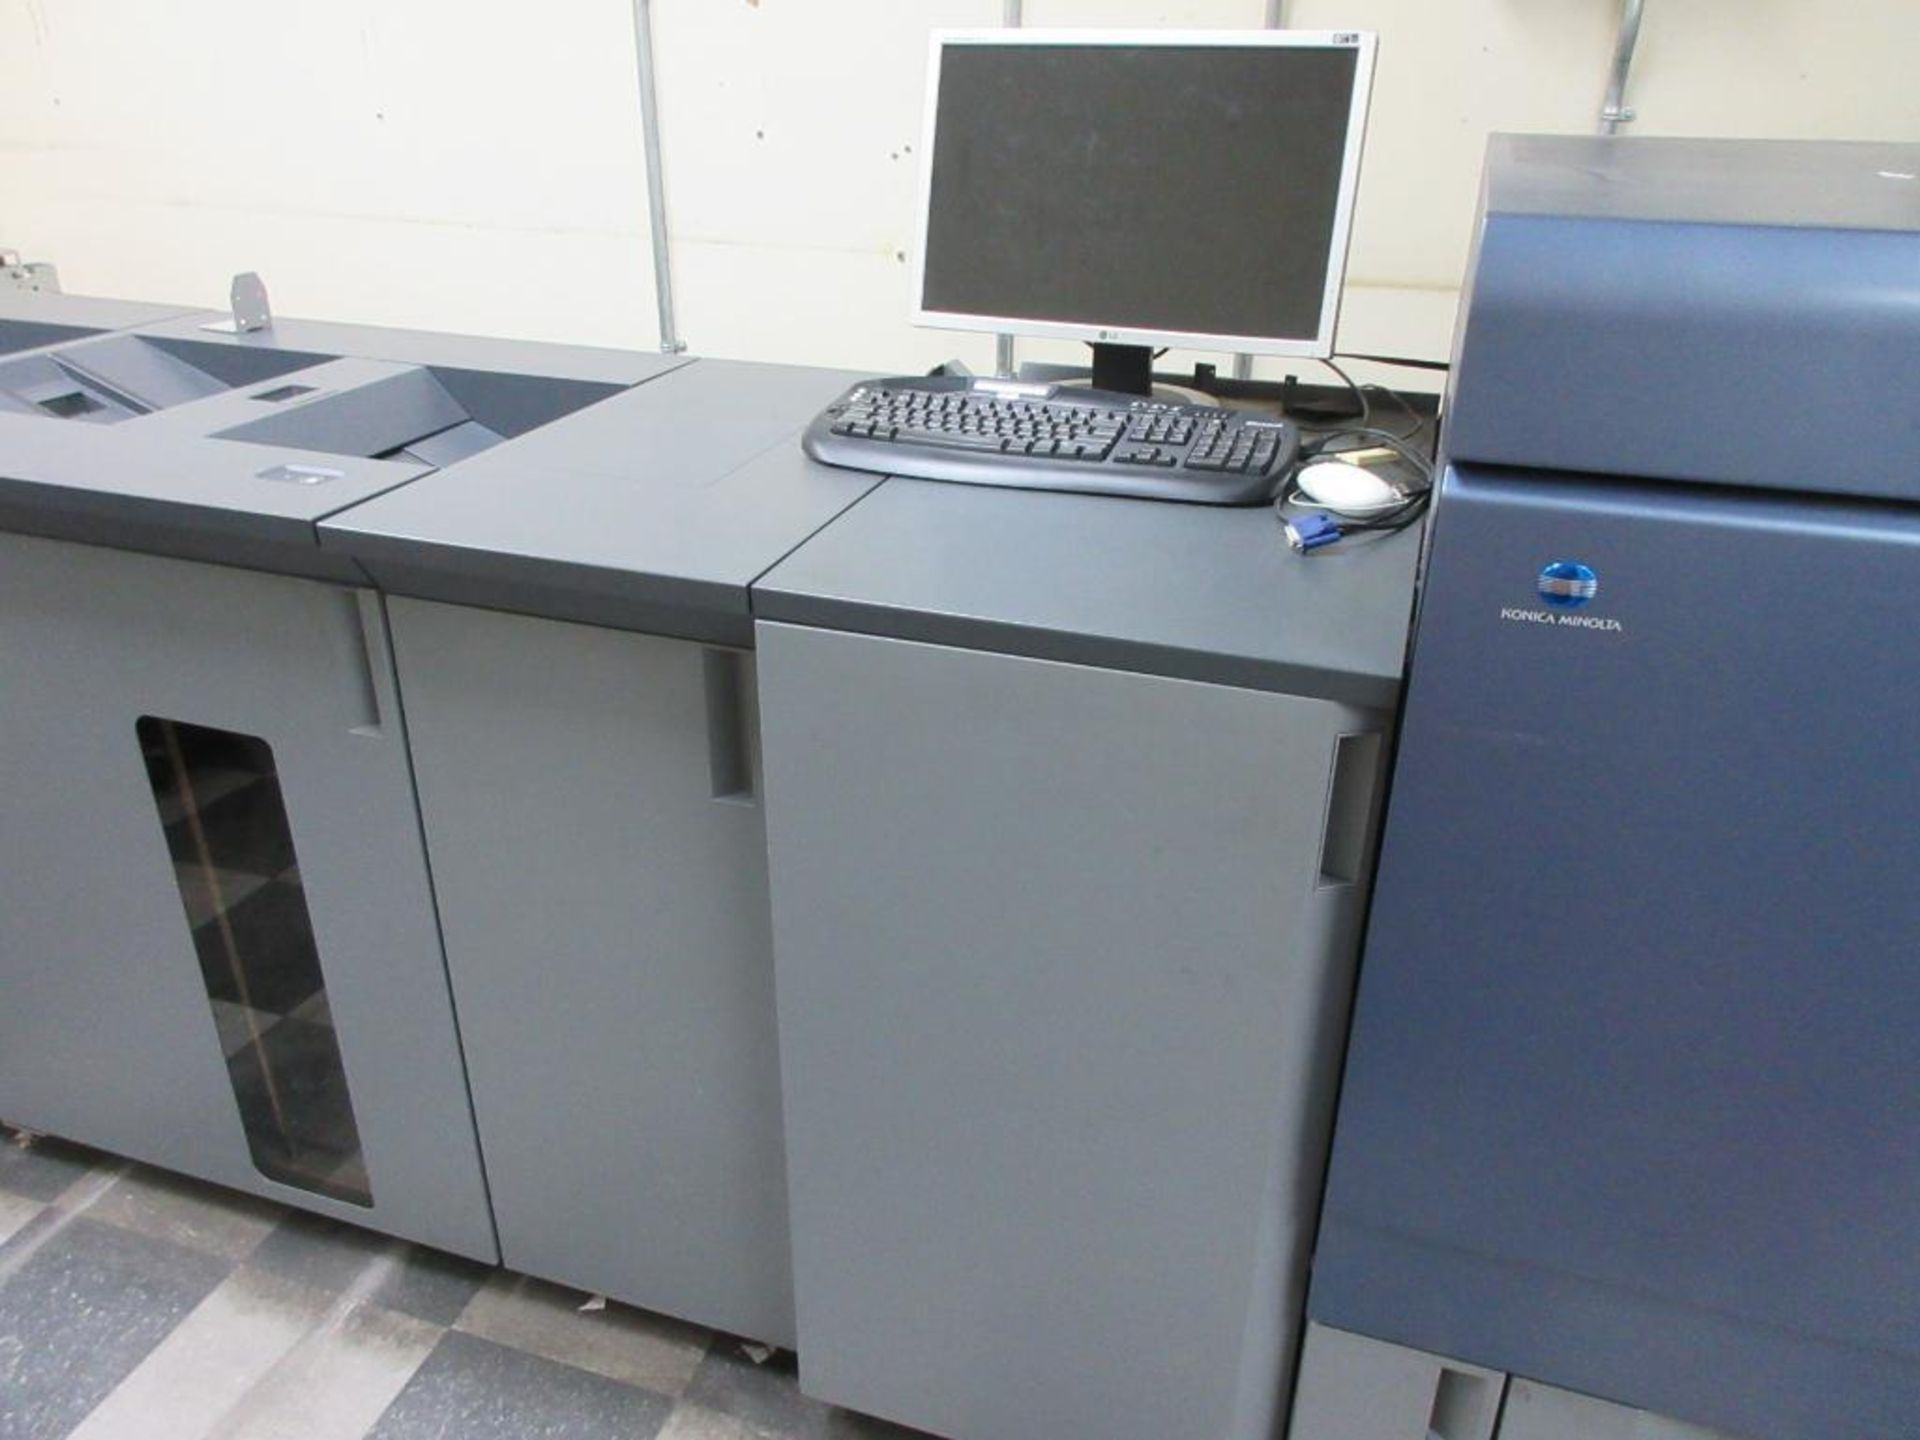 Konica Minolta Digital Press model bizhub press C8000 full colour & B/W 0 PPM capacity, components: - Image 5 of 14